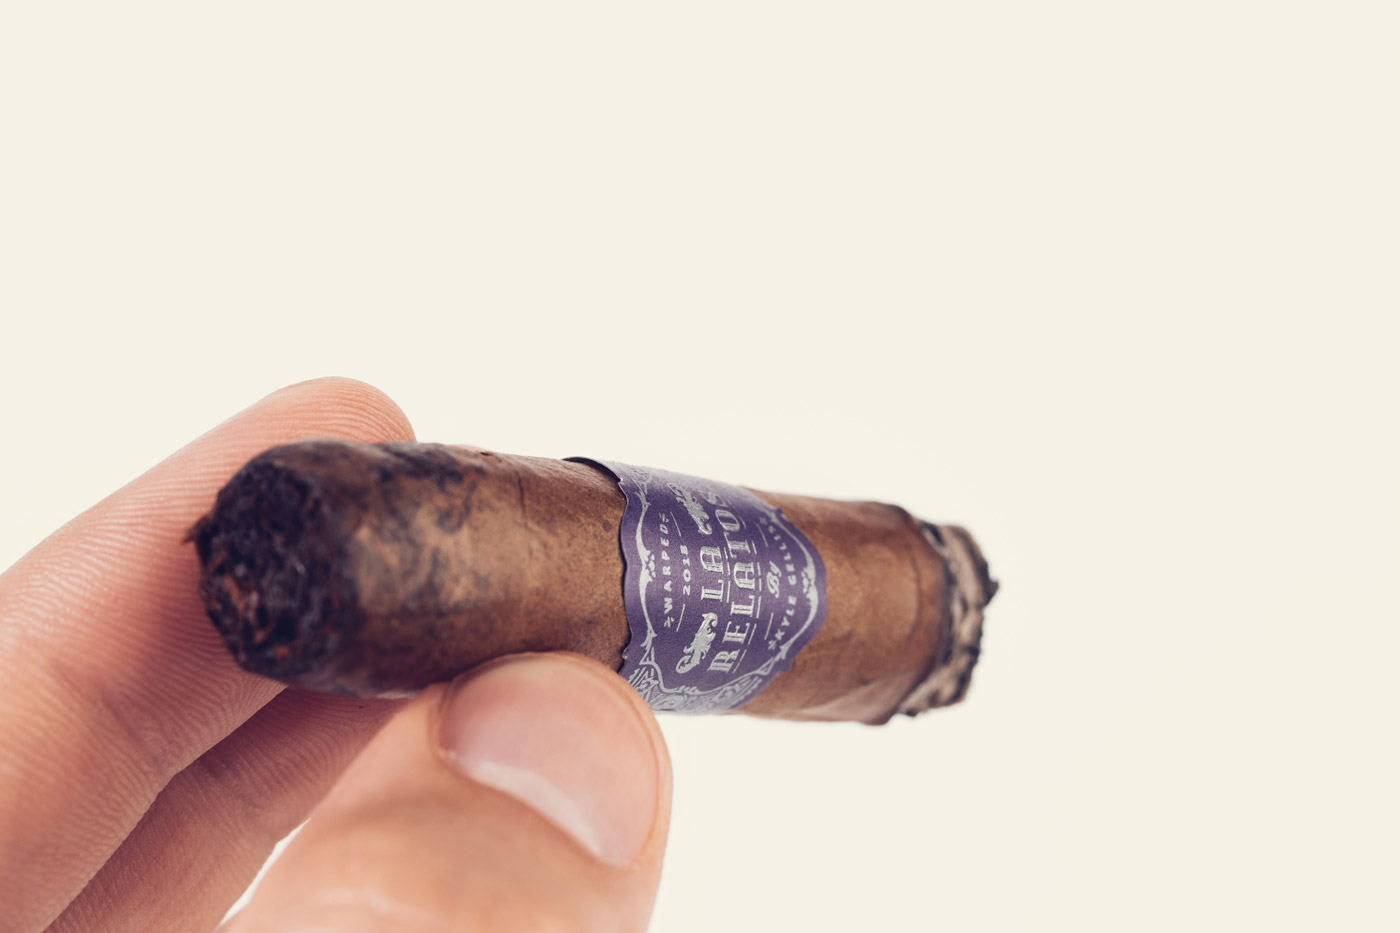 Warped La Relatos The First cigar review